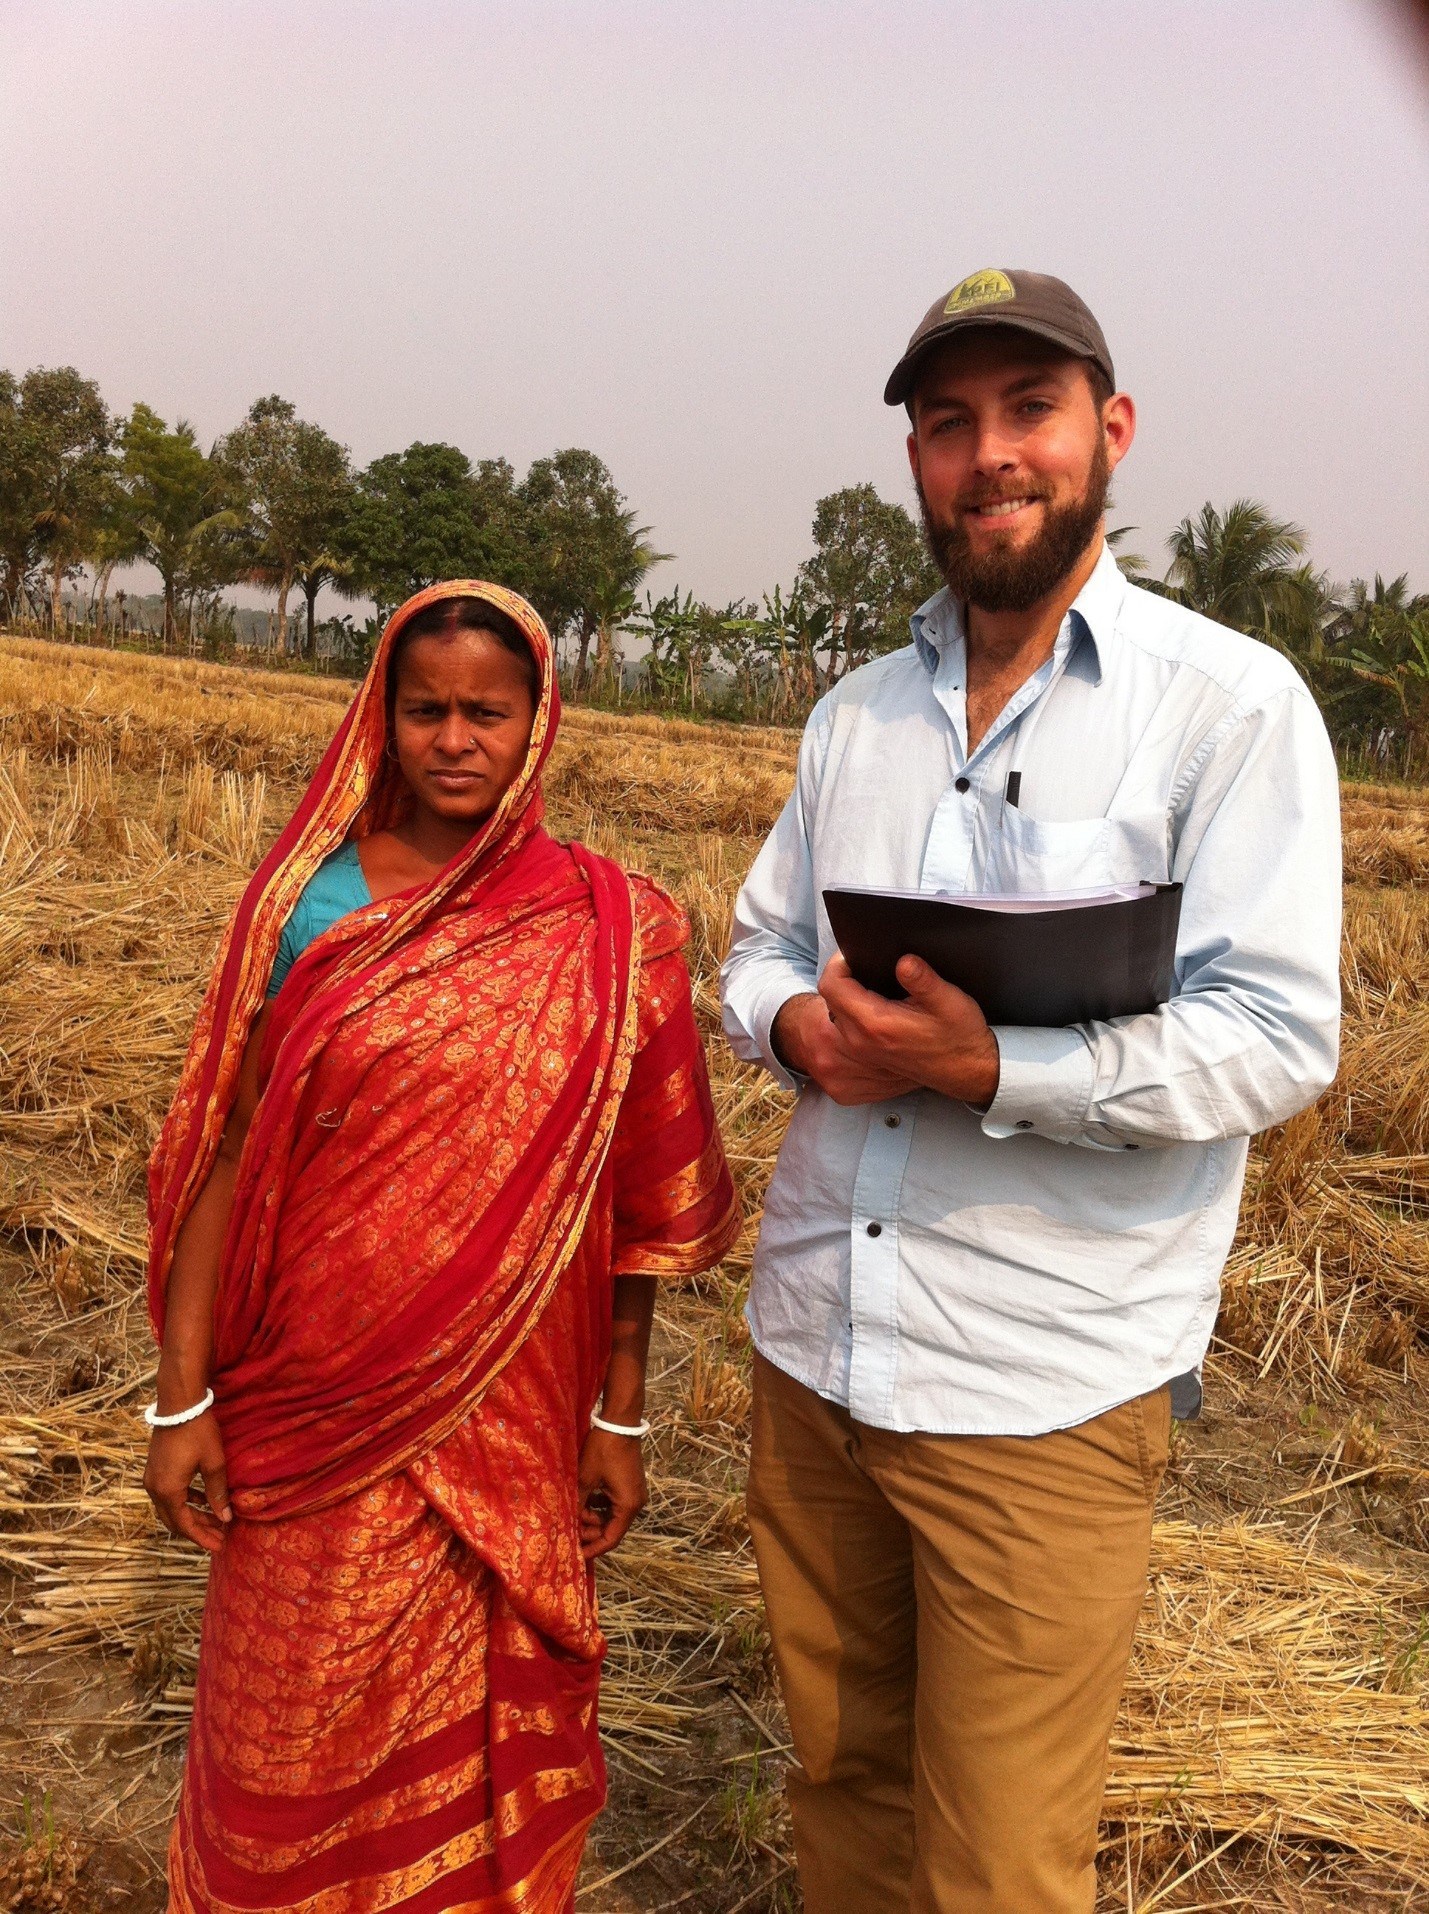 Aaron shew in a field with research subject